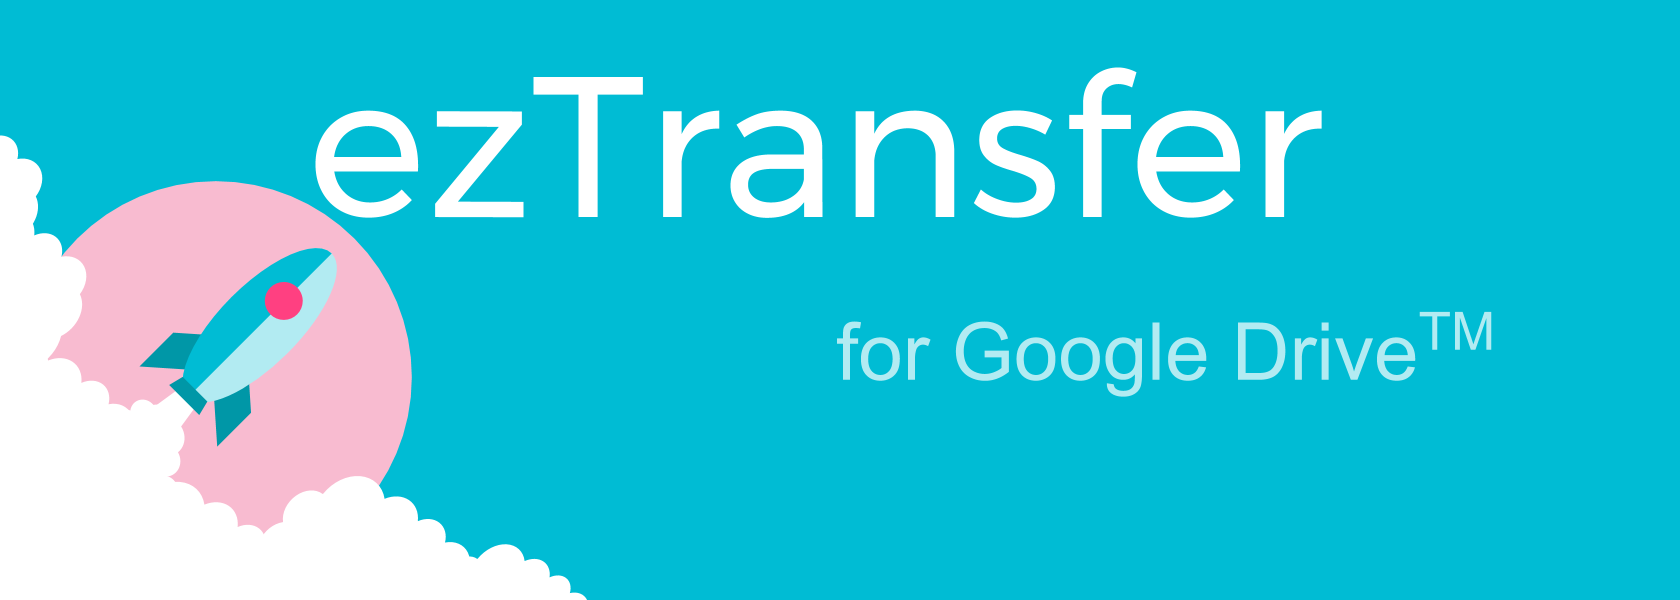 ezTransfer for google to send your drive files